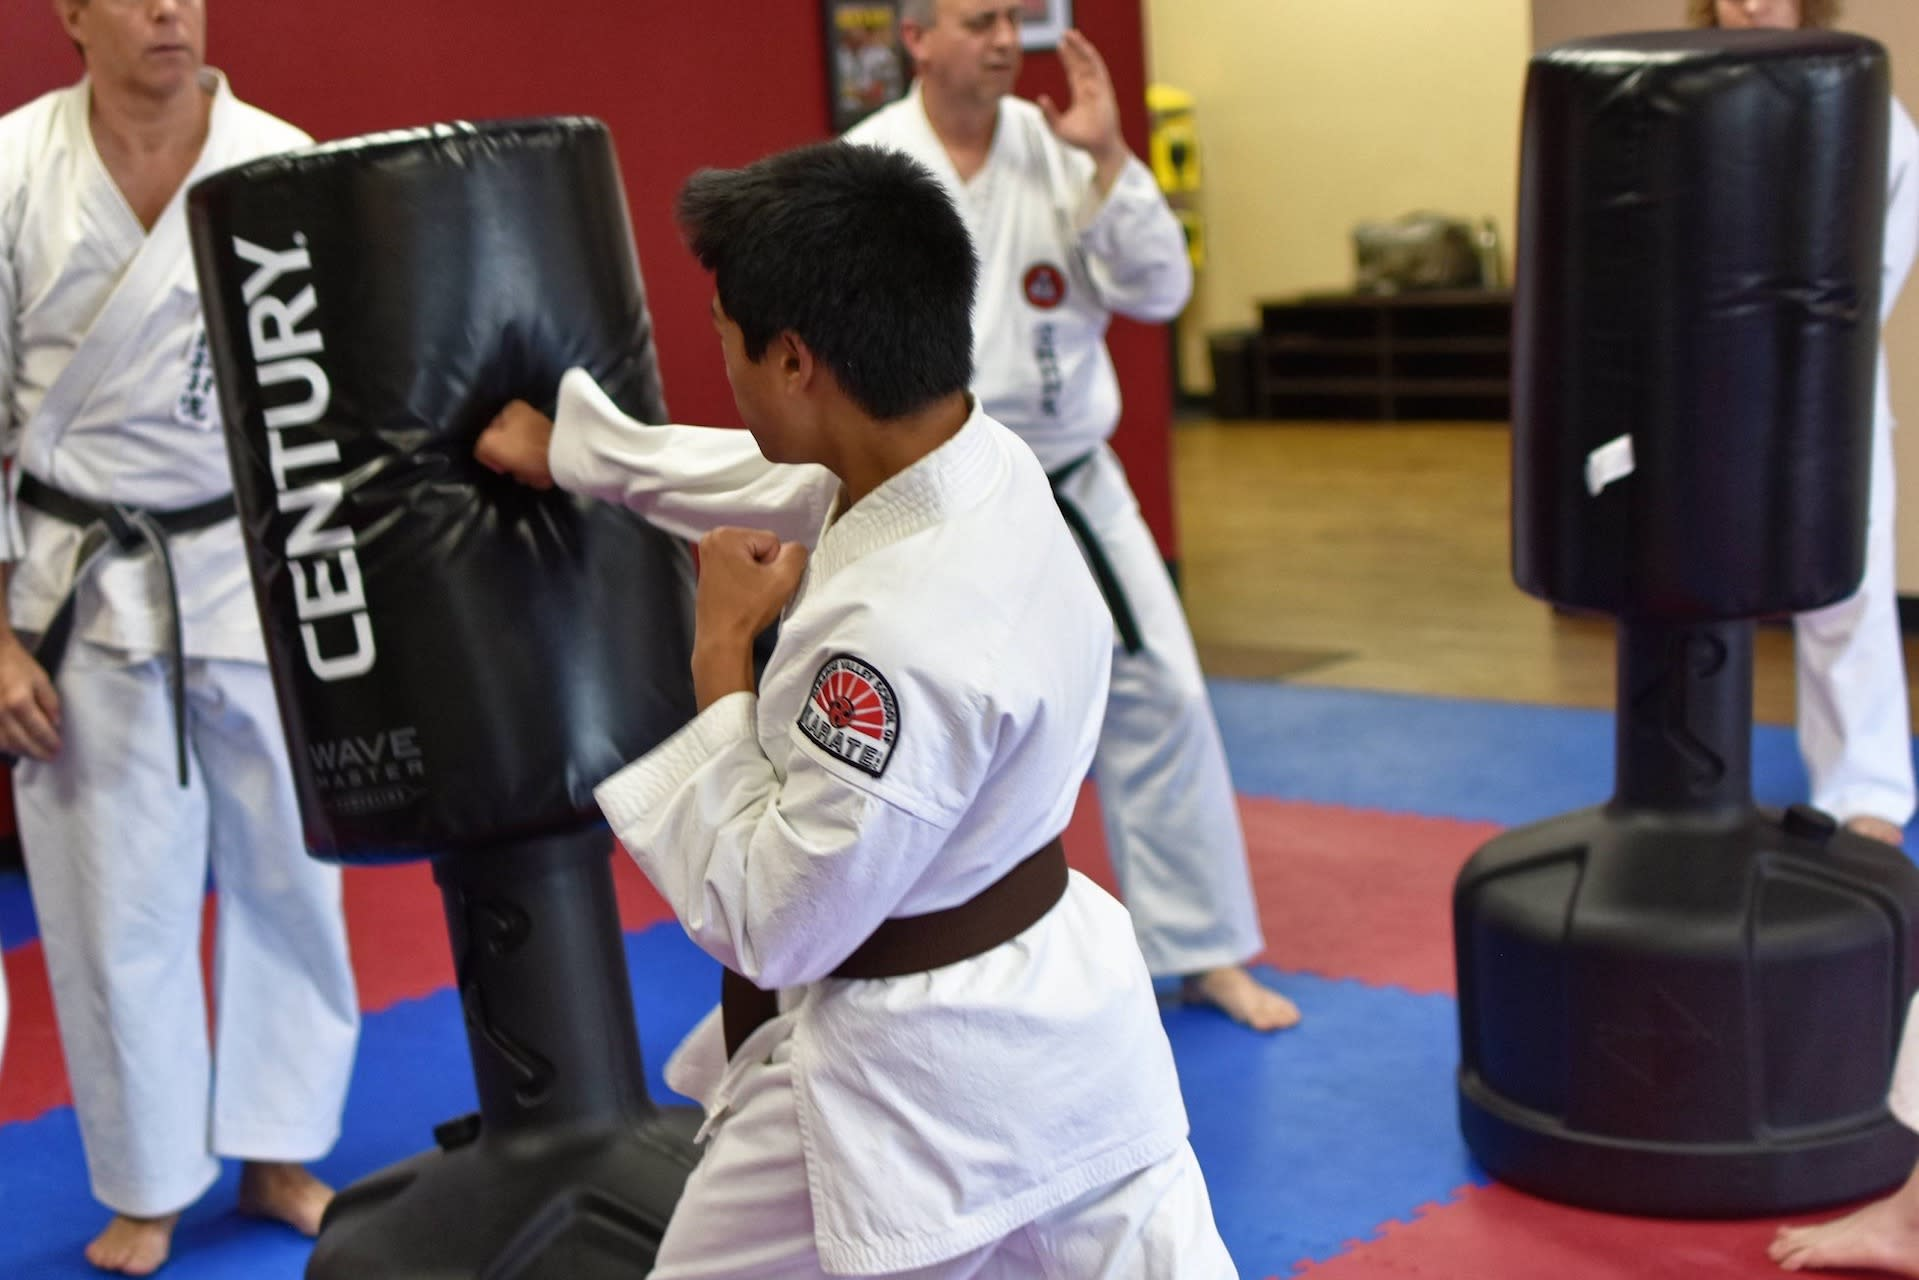 Proudly Serving The Phoenix Community With Martial Arts Classes For All